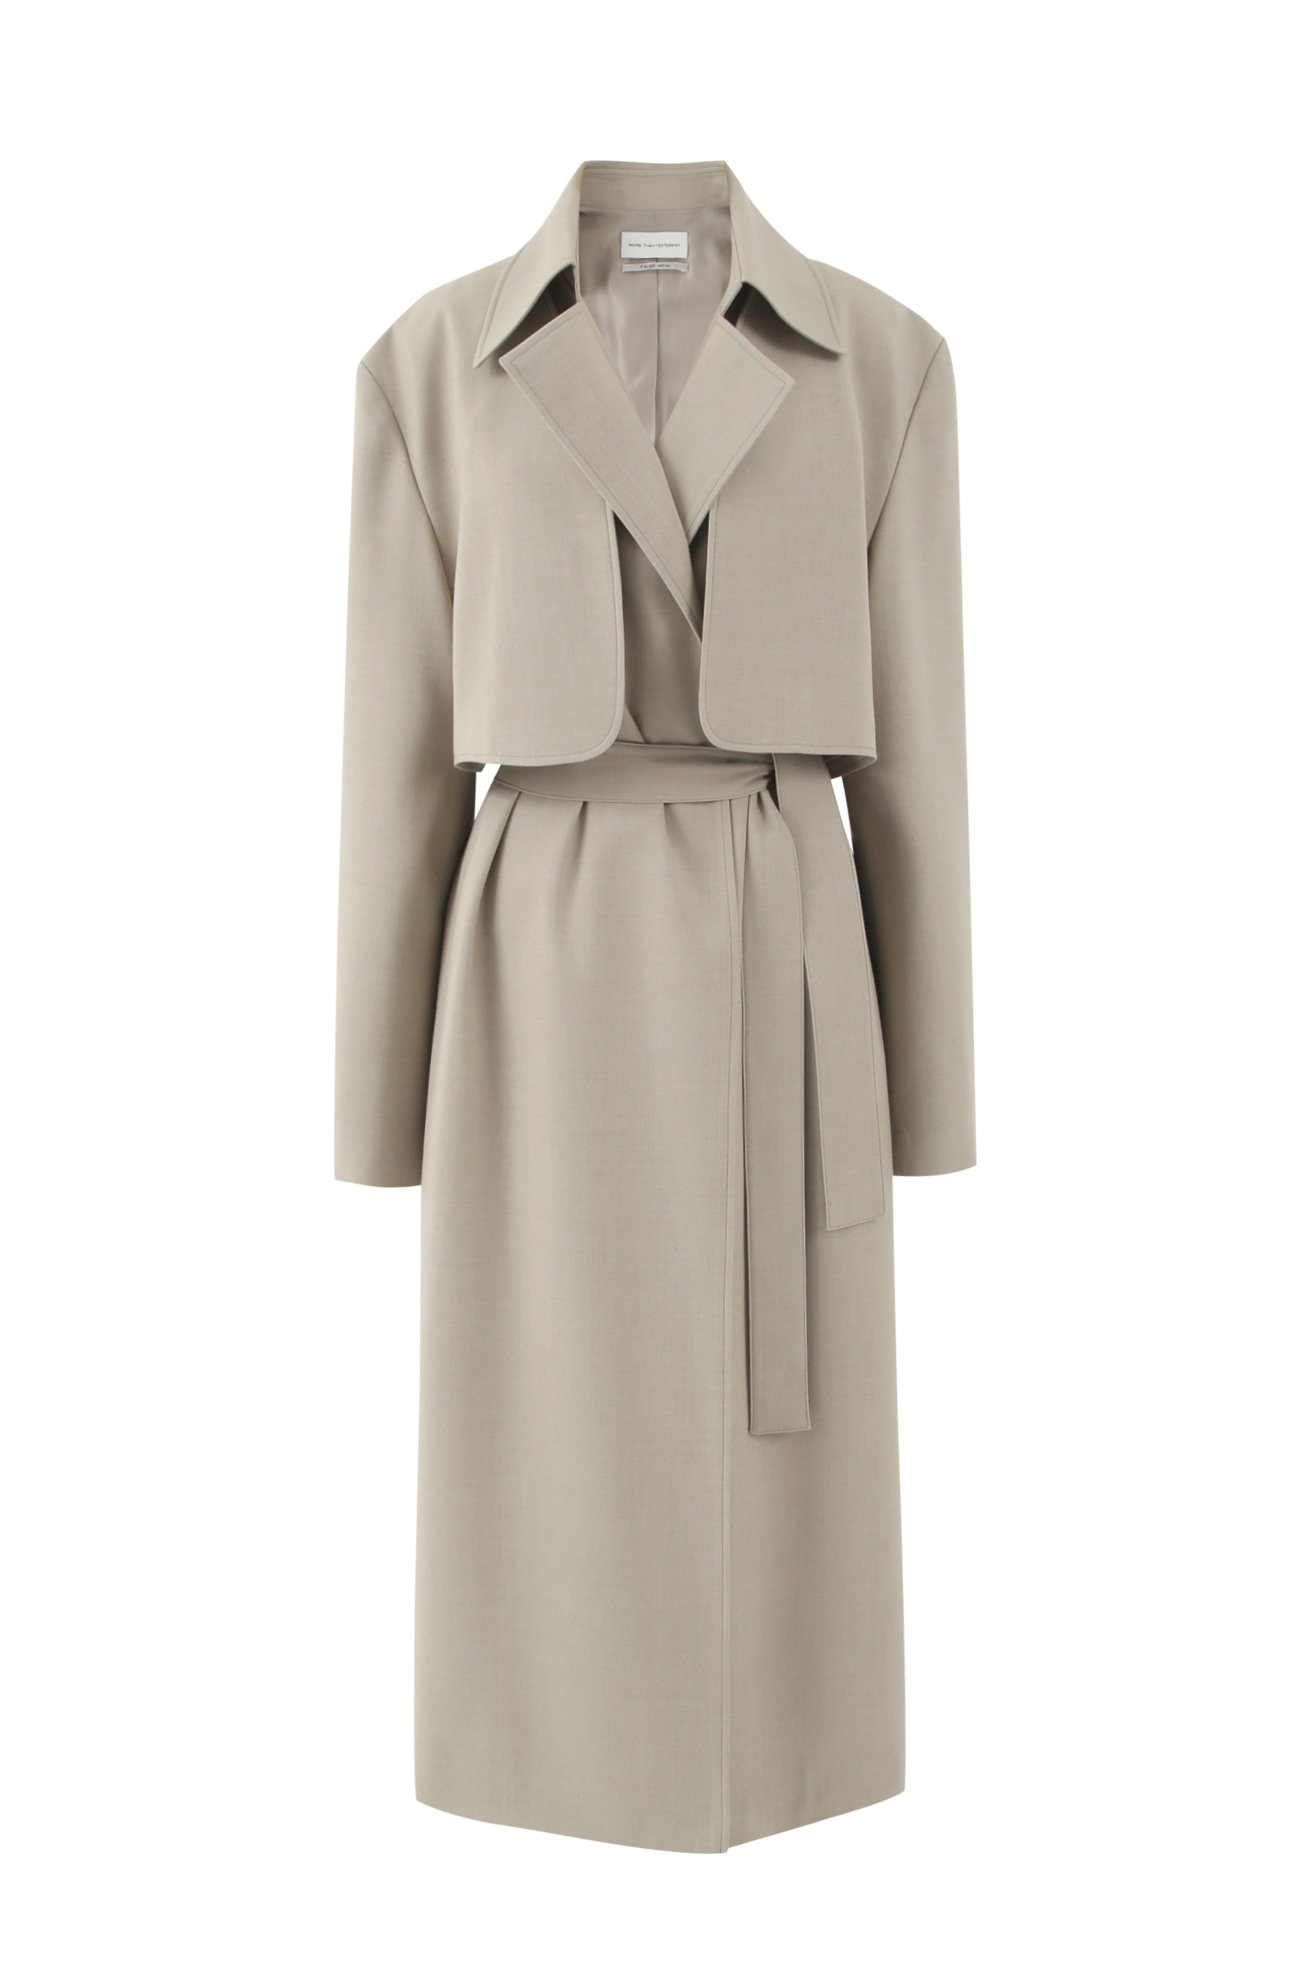 3 WAY TRENCH COAT (KAHKI BEIGE) ATELIER EDITION